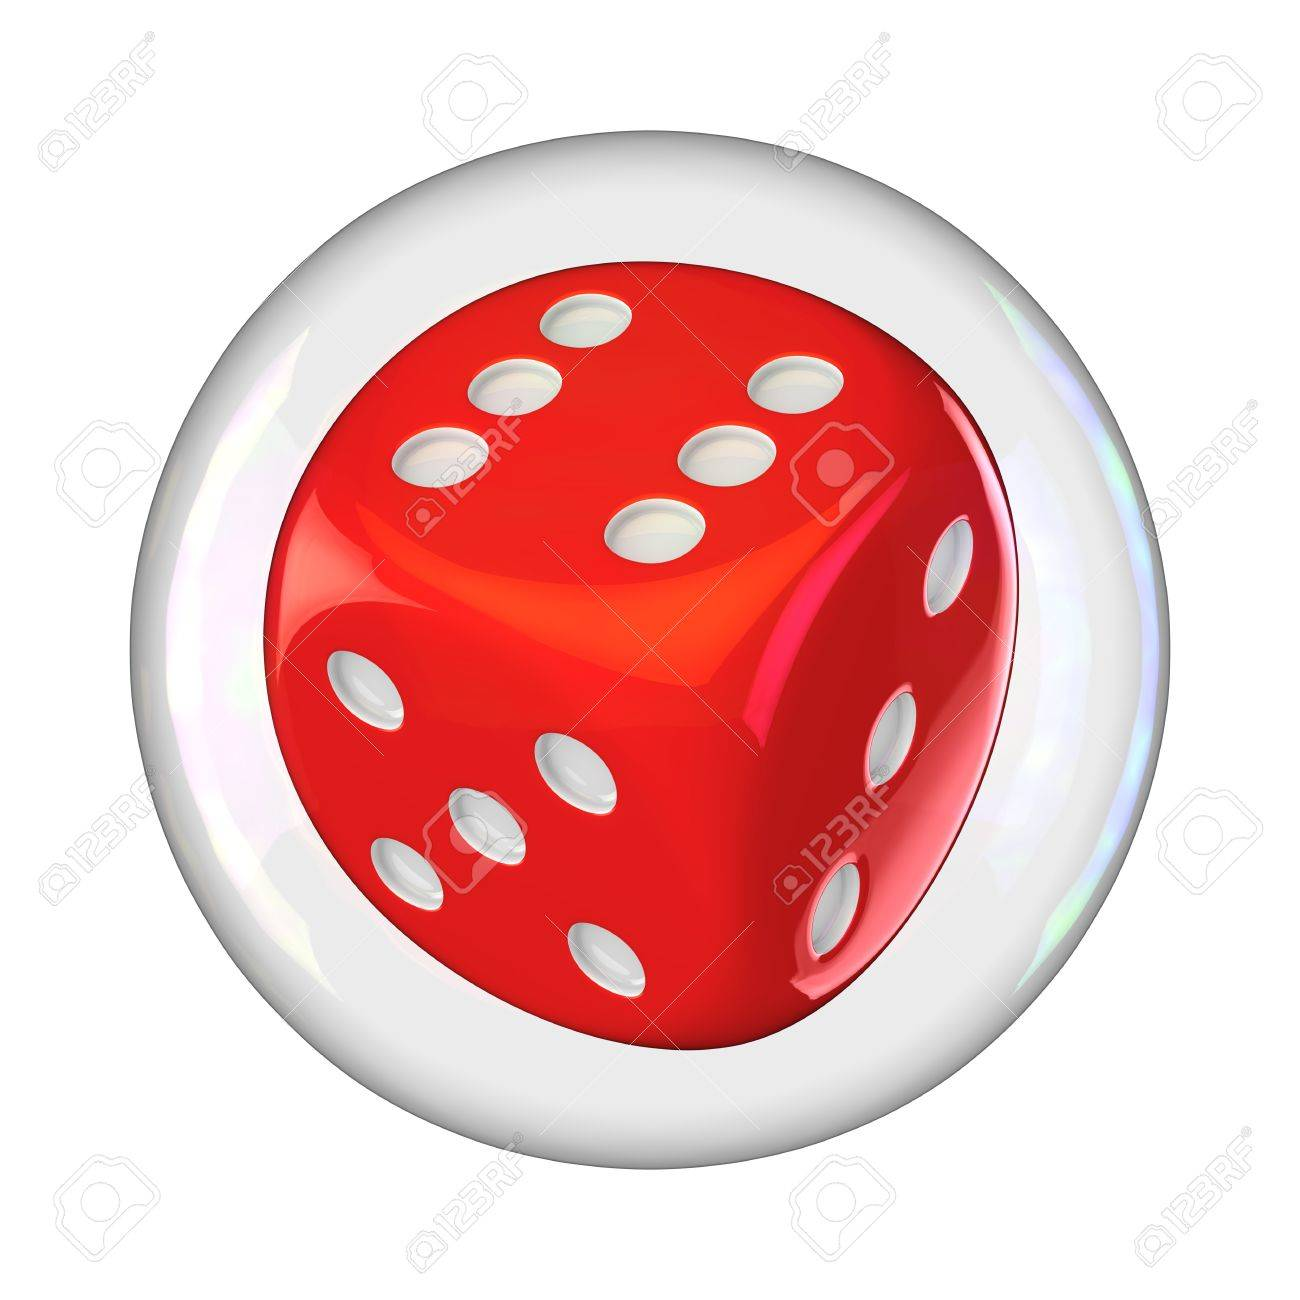 Gambling dice into the soap bubble isolated Stock Photo - 16612616